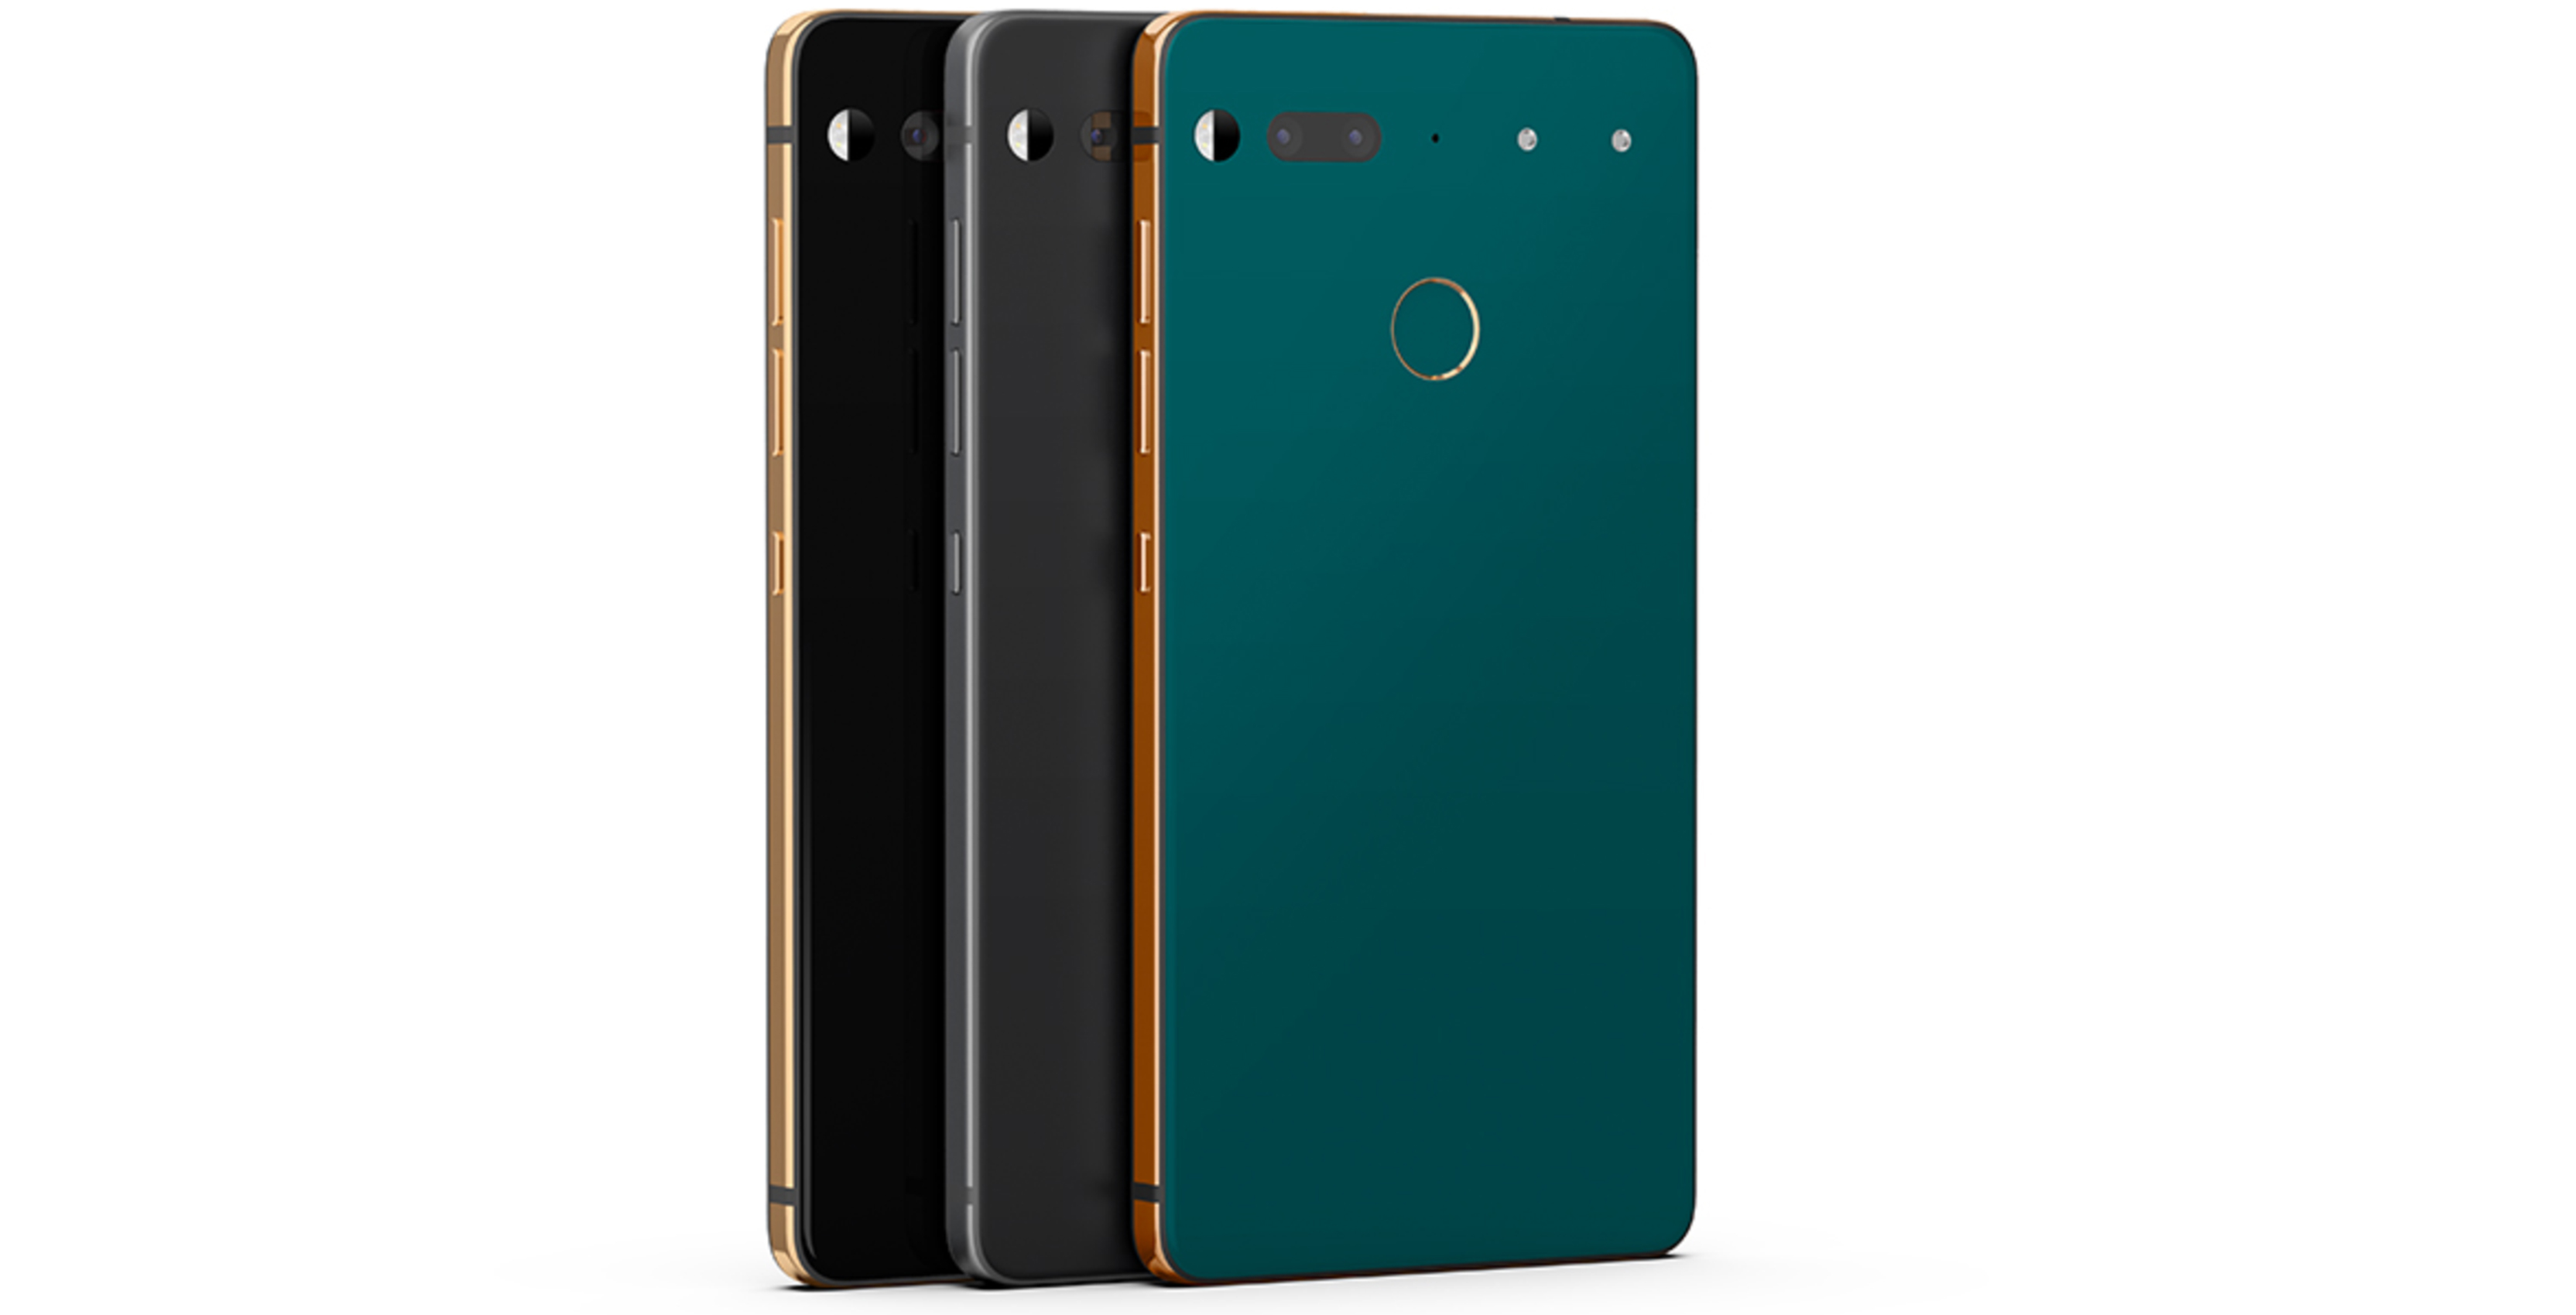 The Essential Phone now has new (and more expensive) limited color editions